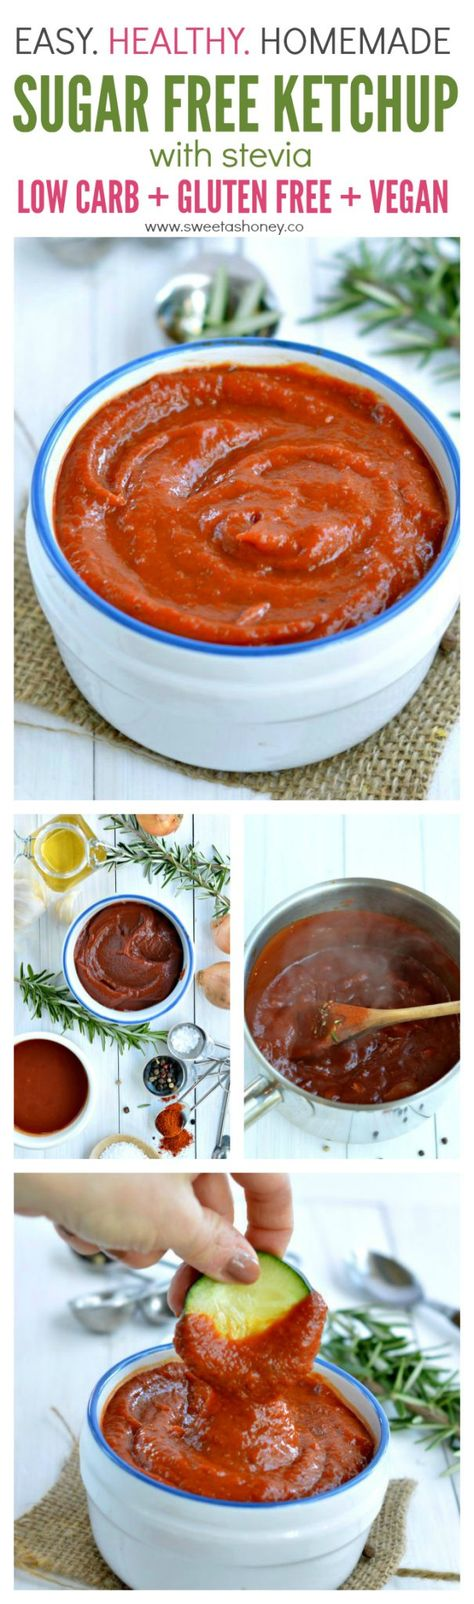 Low Carb Homemade Sugar free ketchup recipe. A delicious